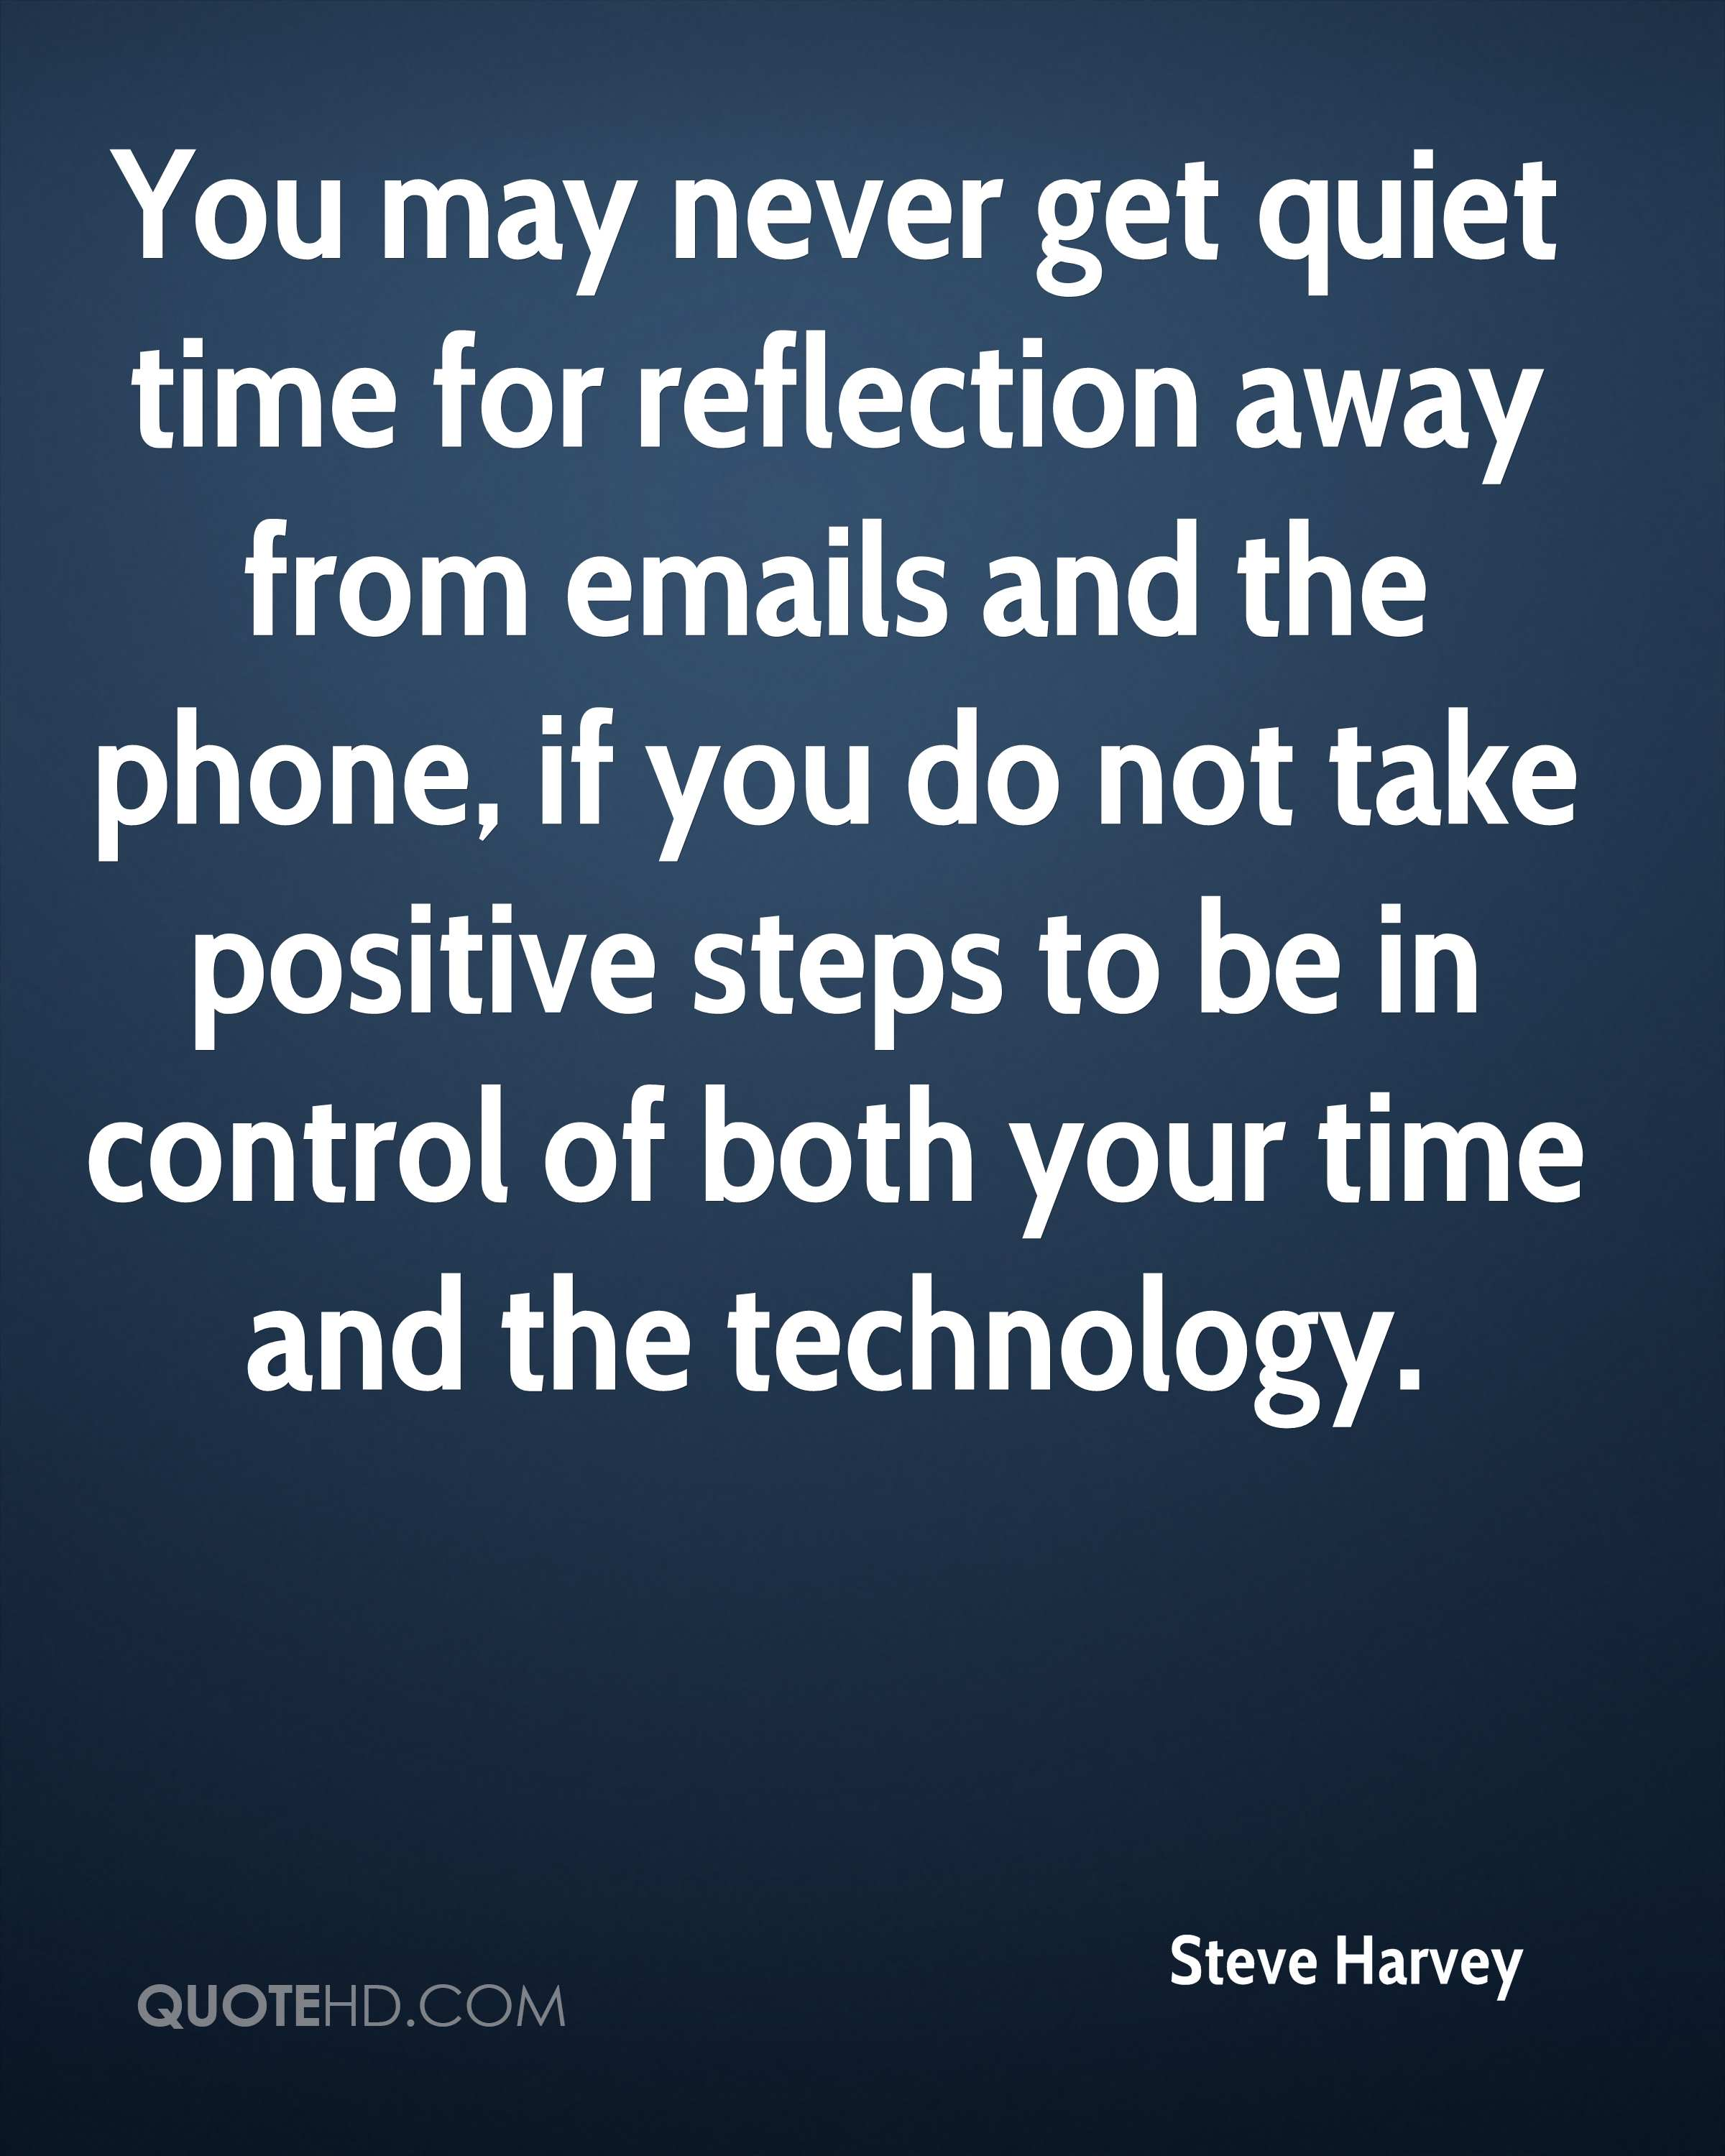 Take Time To Reflect Quotes: Steve Harvey Quotes